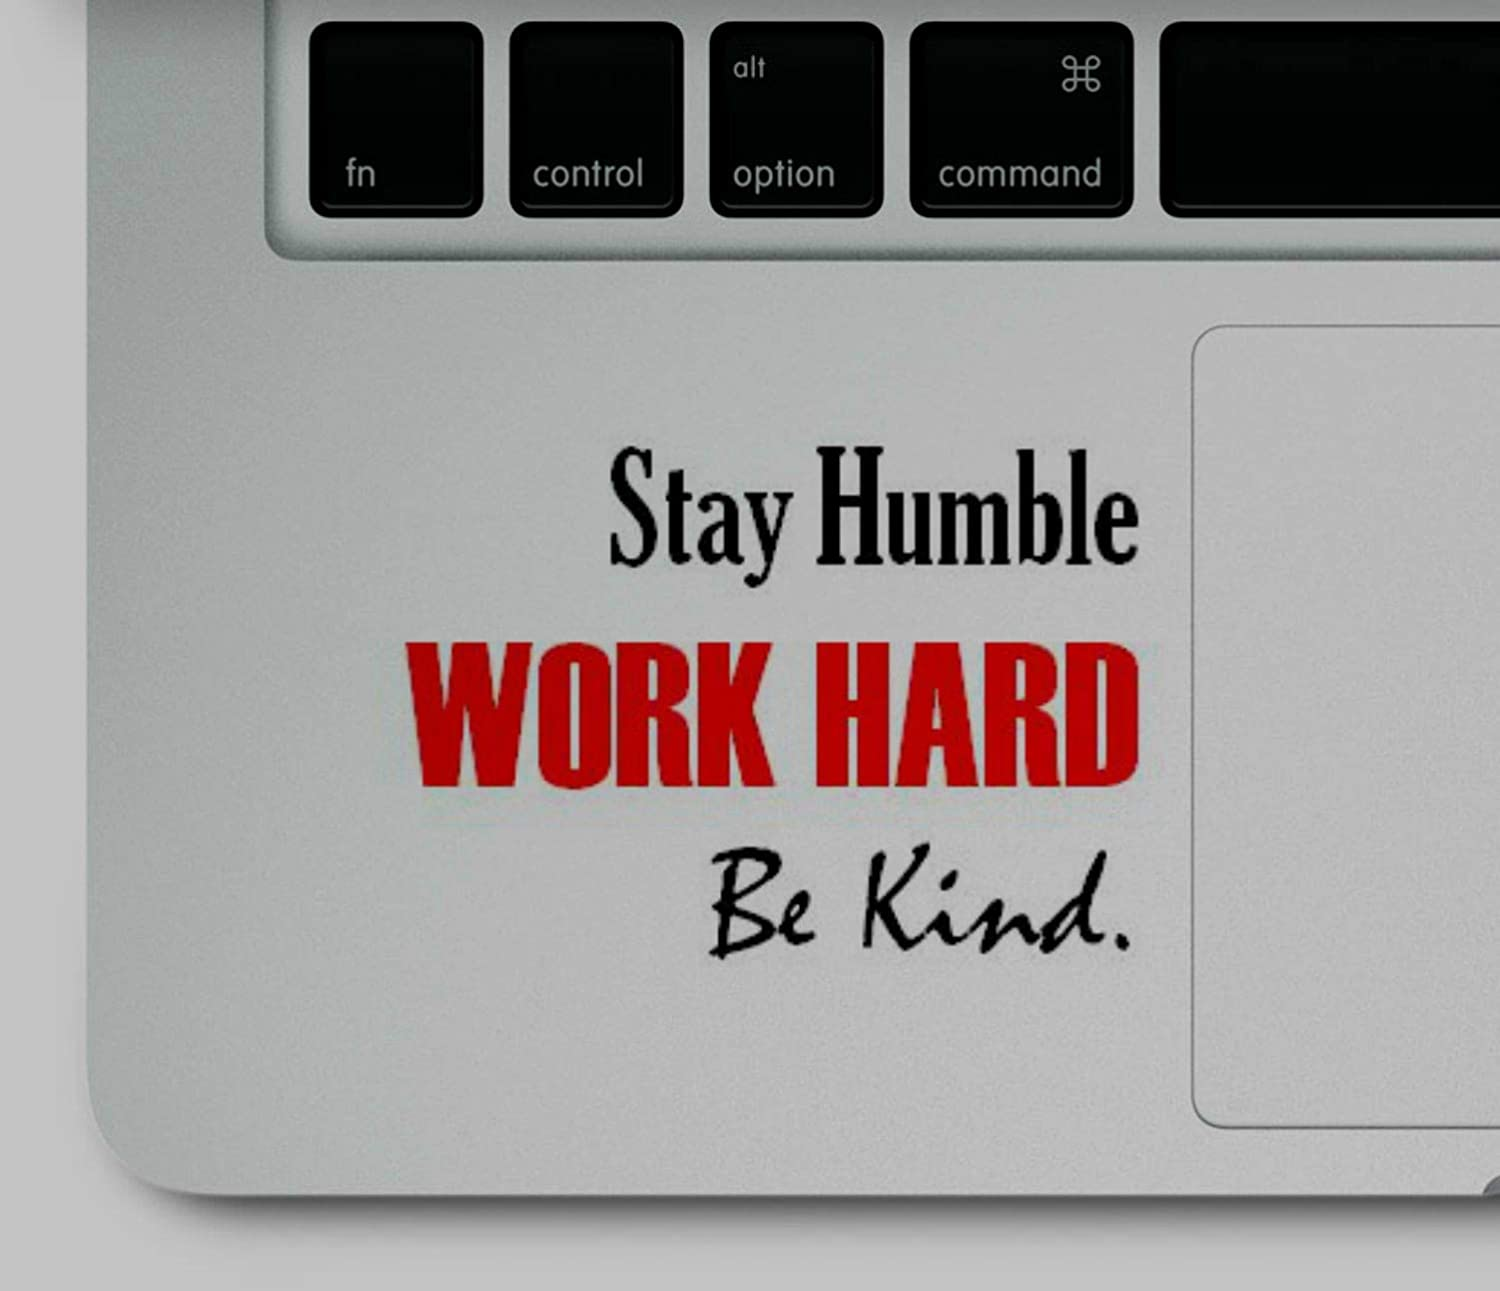 Decal & Sticker Pros Stay Humble Work Hard Be Kind Motivational Quote Printed Sticker Decal Compatible Replacement for All Apple MacBook Pro, Retina, Air Trackpad